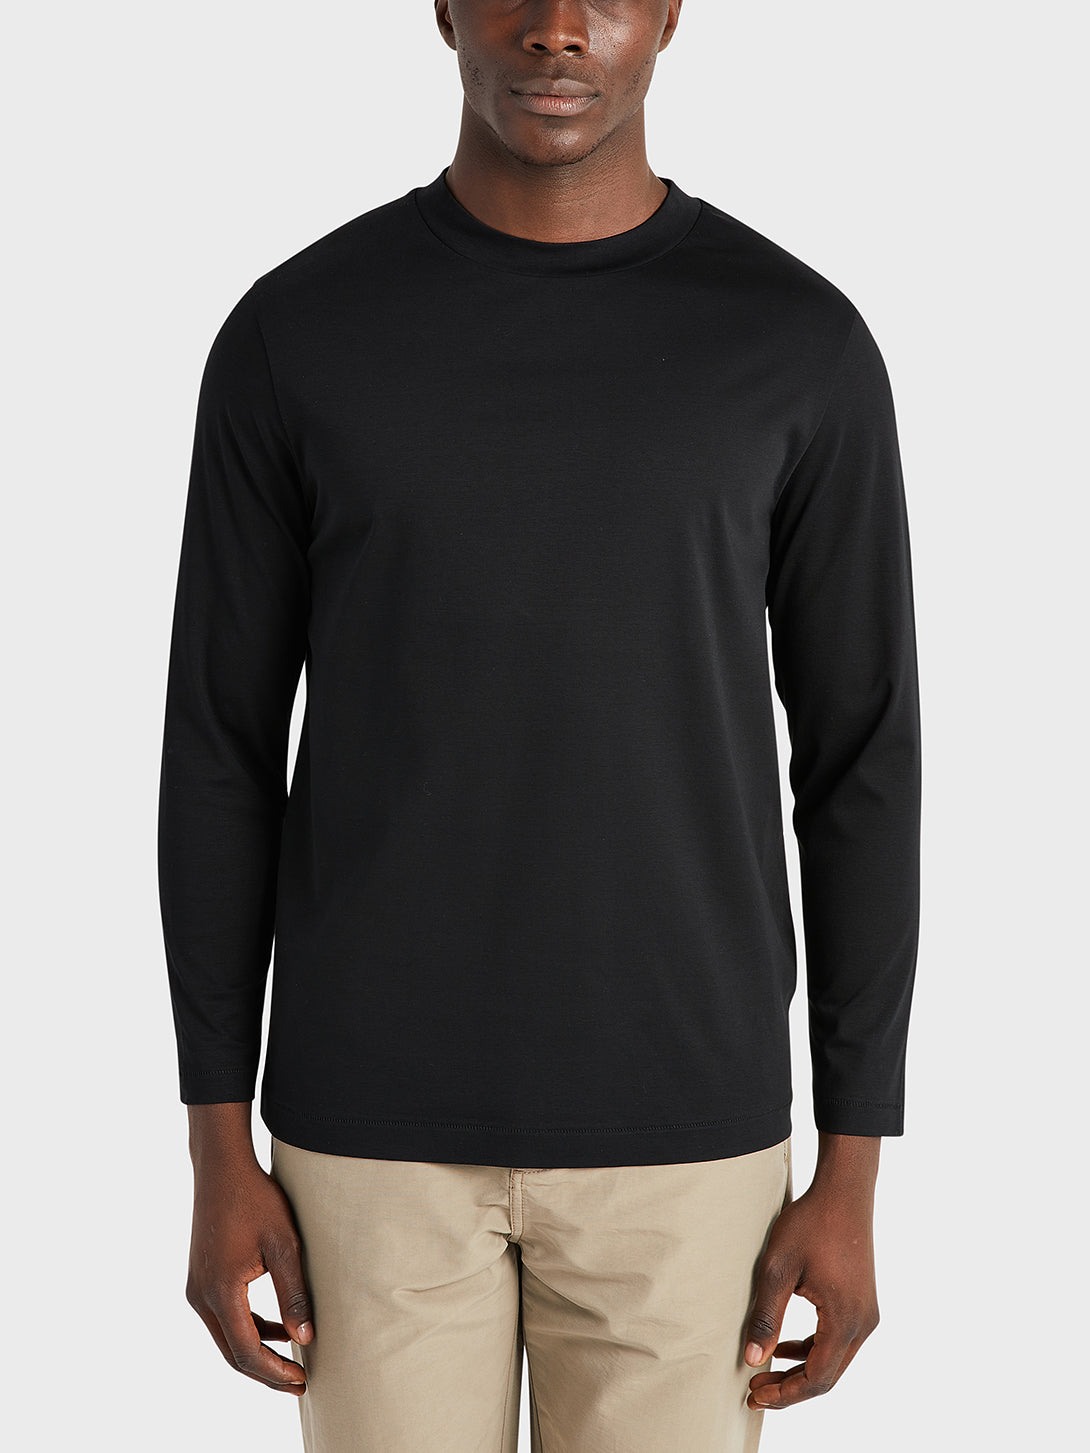 ONS Clothing Men's MASCOT TEE in BLACK black friday deals